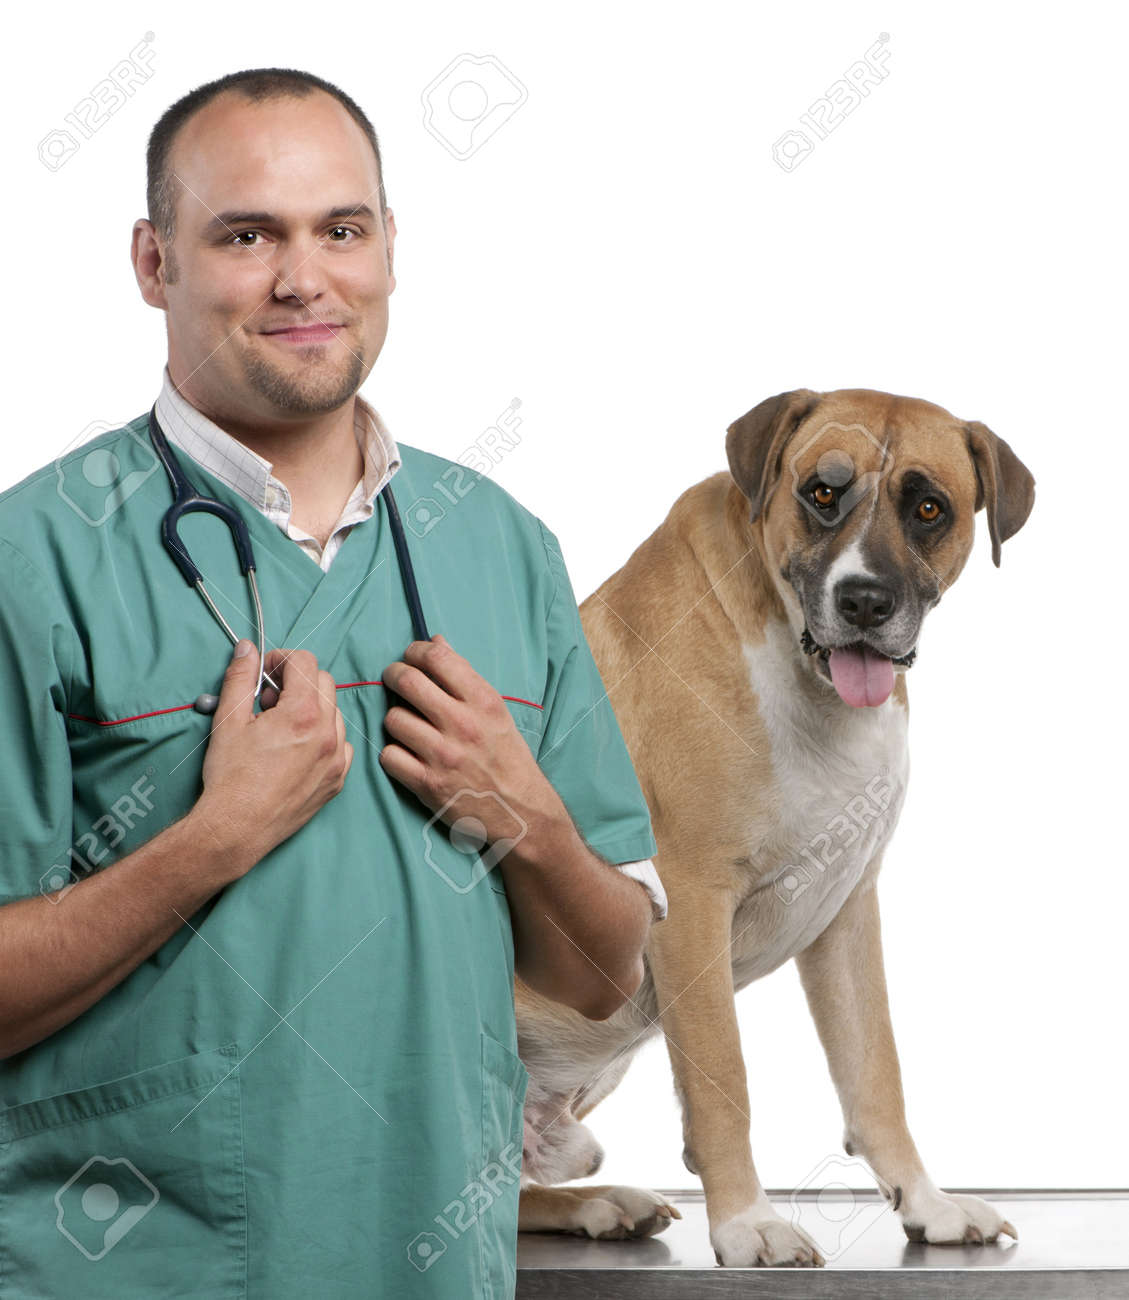 Vet standing next to a Crossbreed dog, dog in front of white background Stock Photo - 12668025